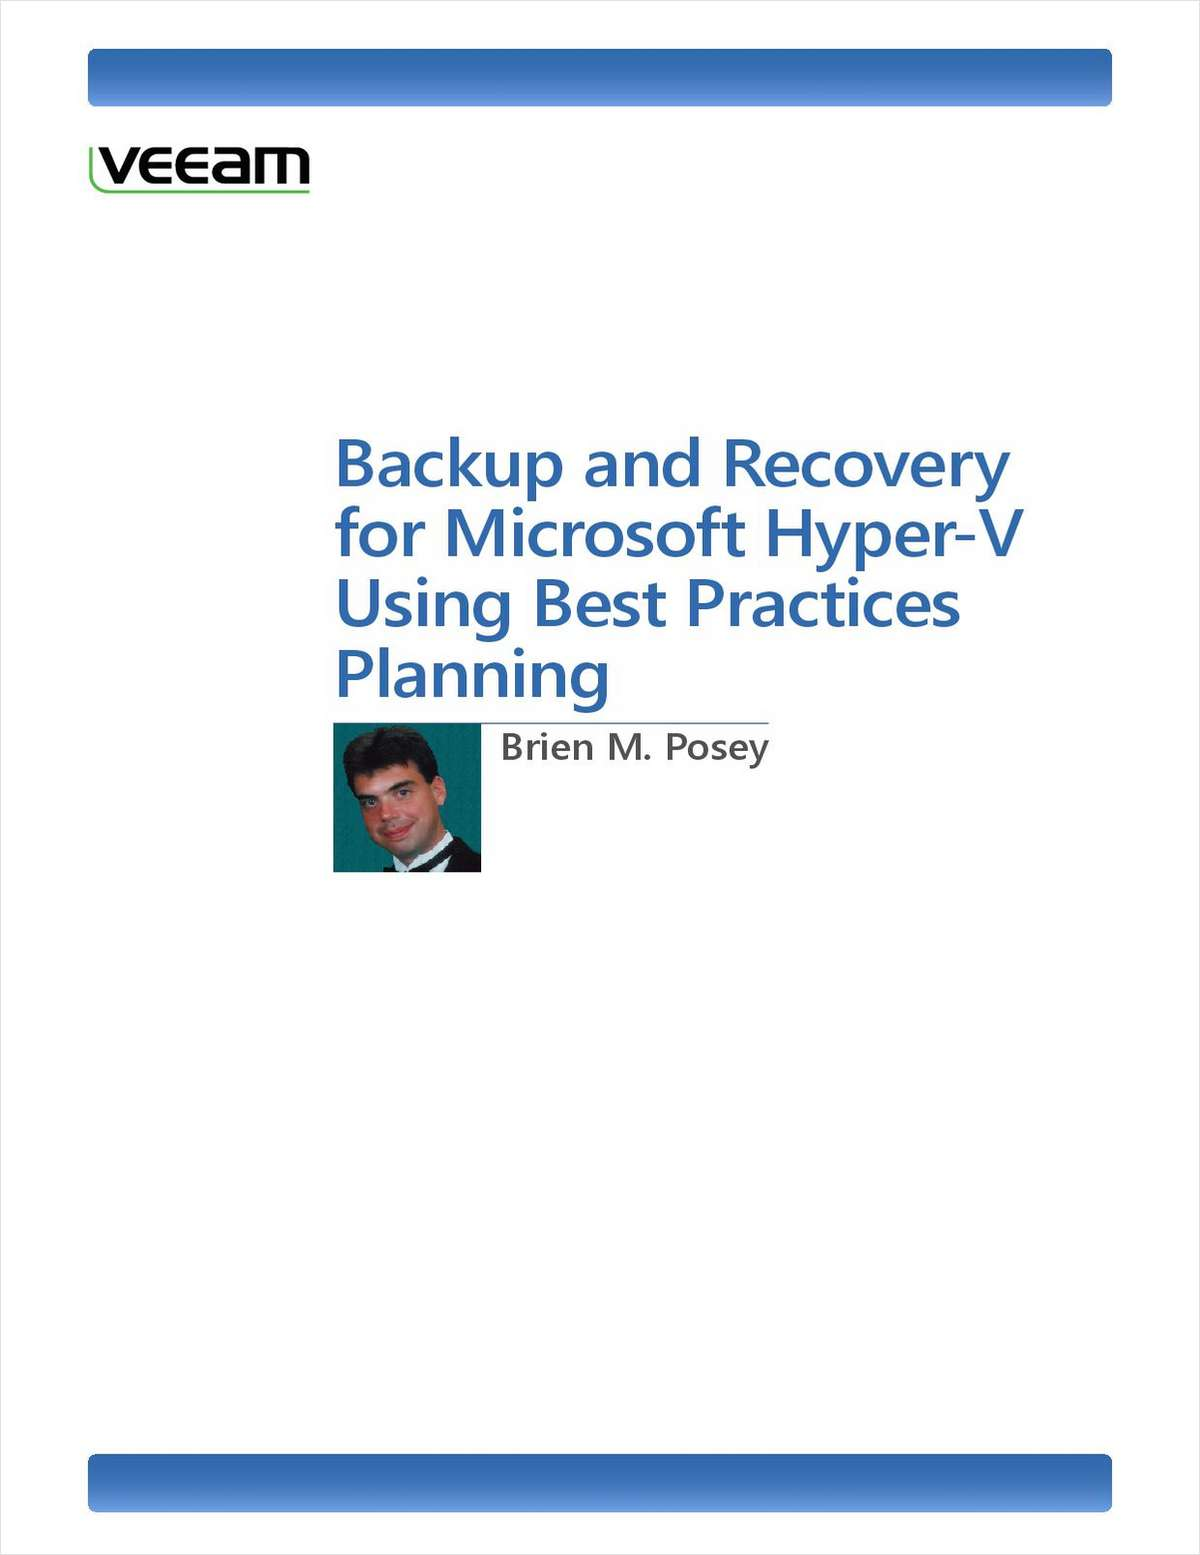 Microsoft Hyper-V Backup and Recovery Best Practices